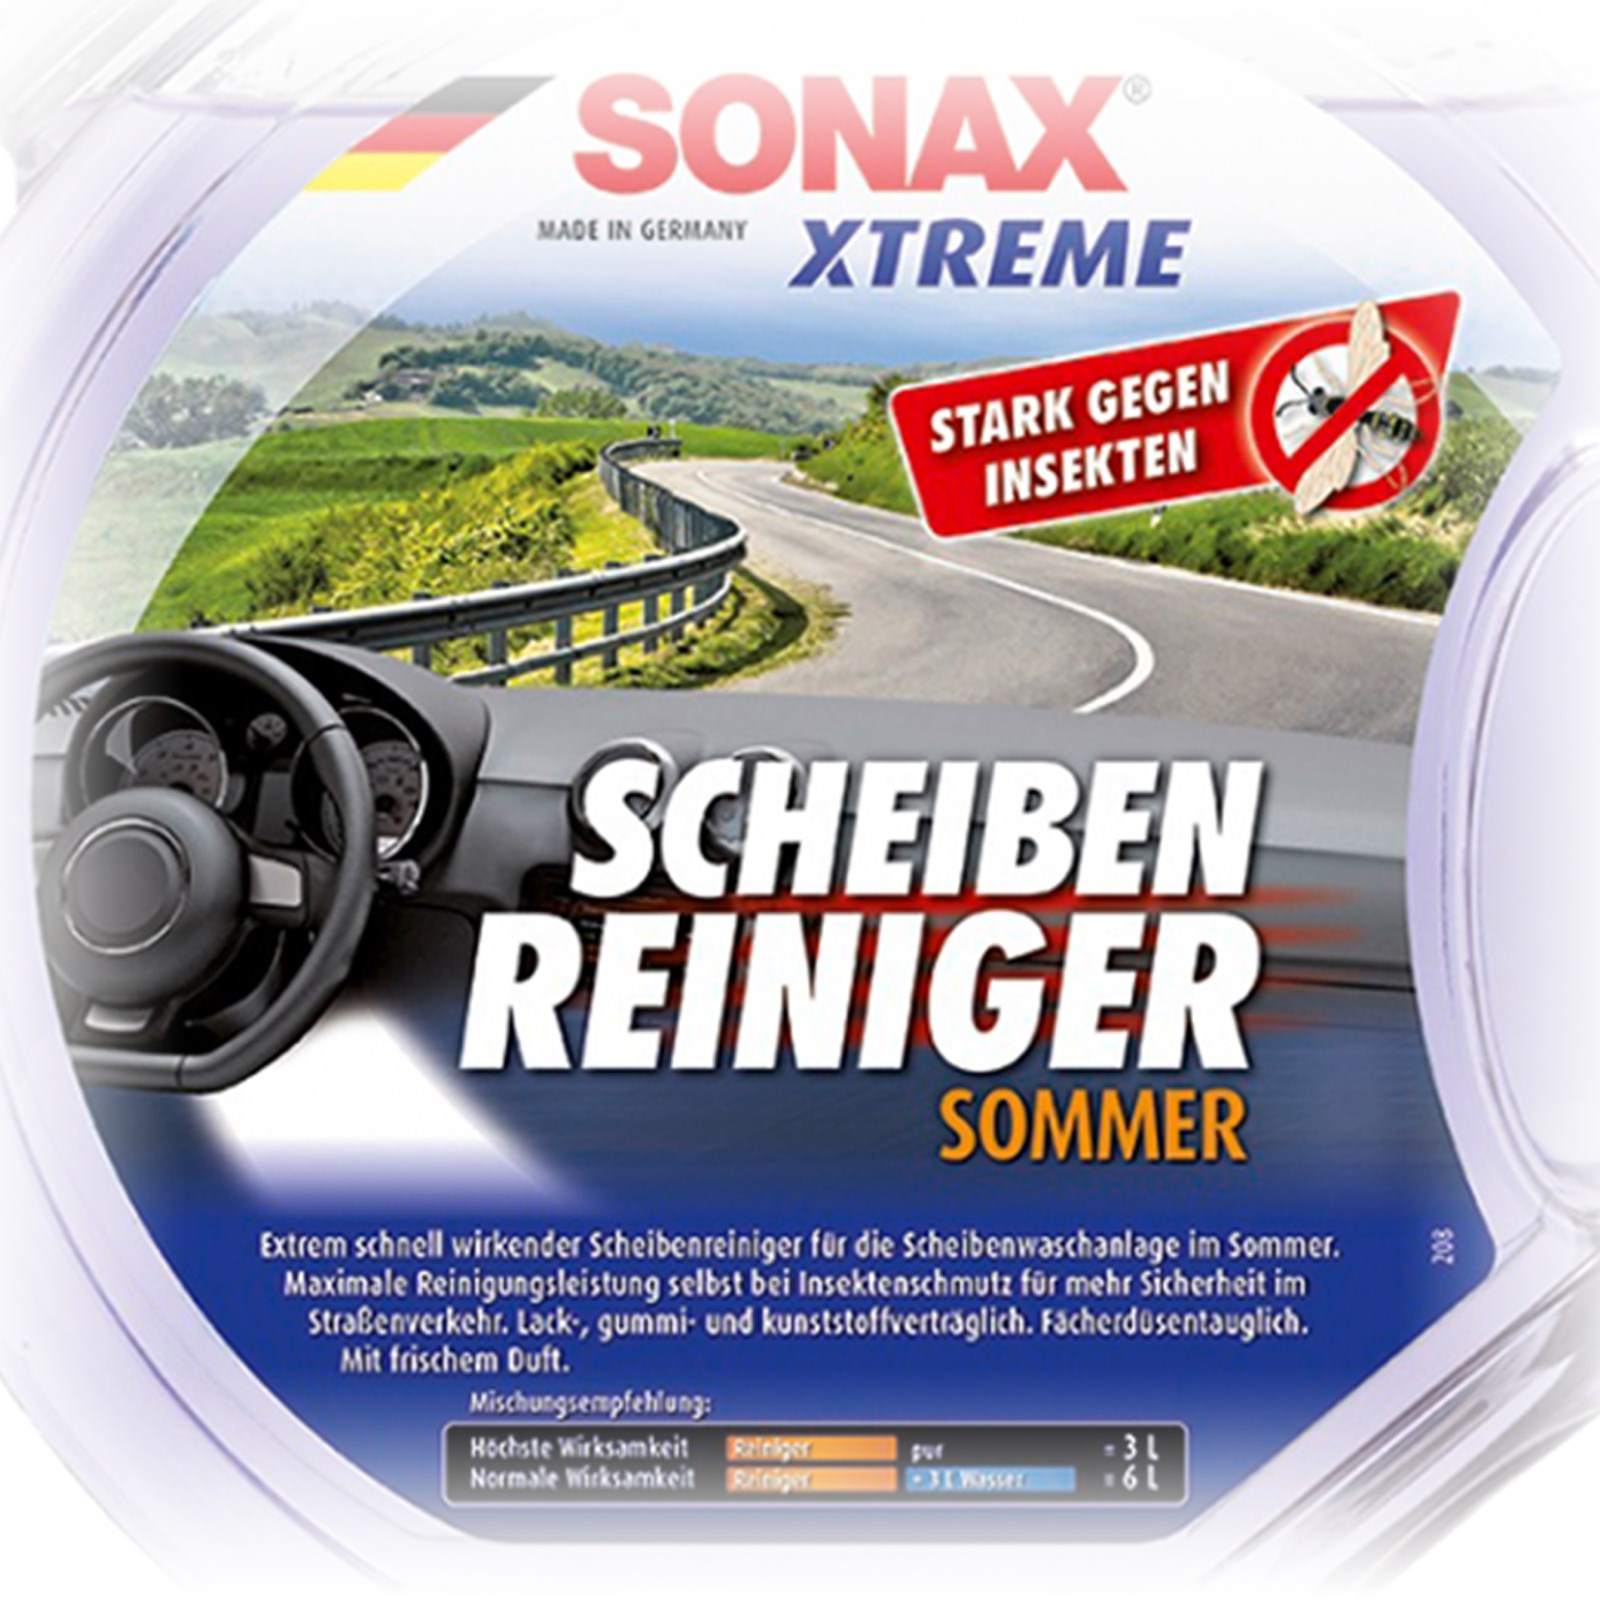 4x 3 l liter sonax xtreme scheibenreiniger sommer. Black Bedroom Furniture Sets. Home Design Ideas